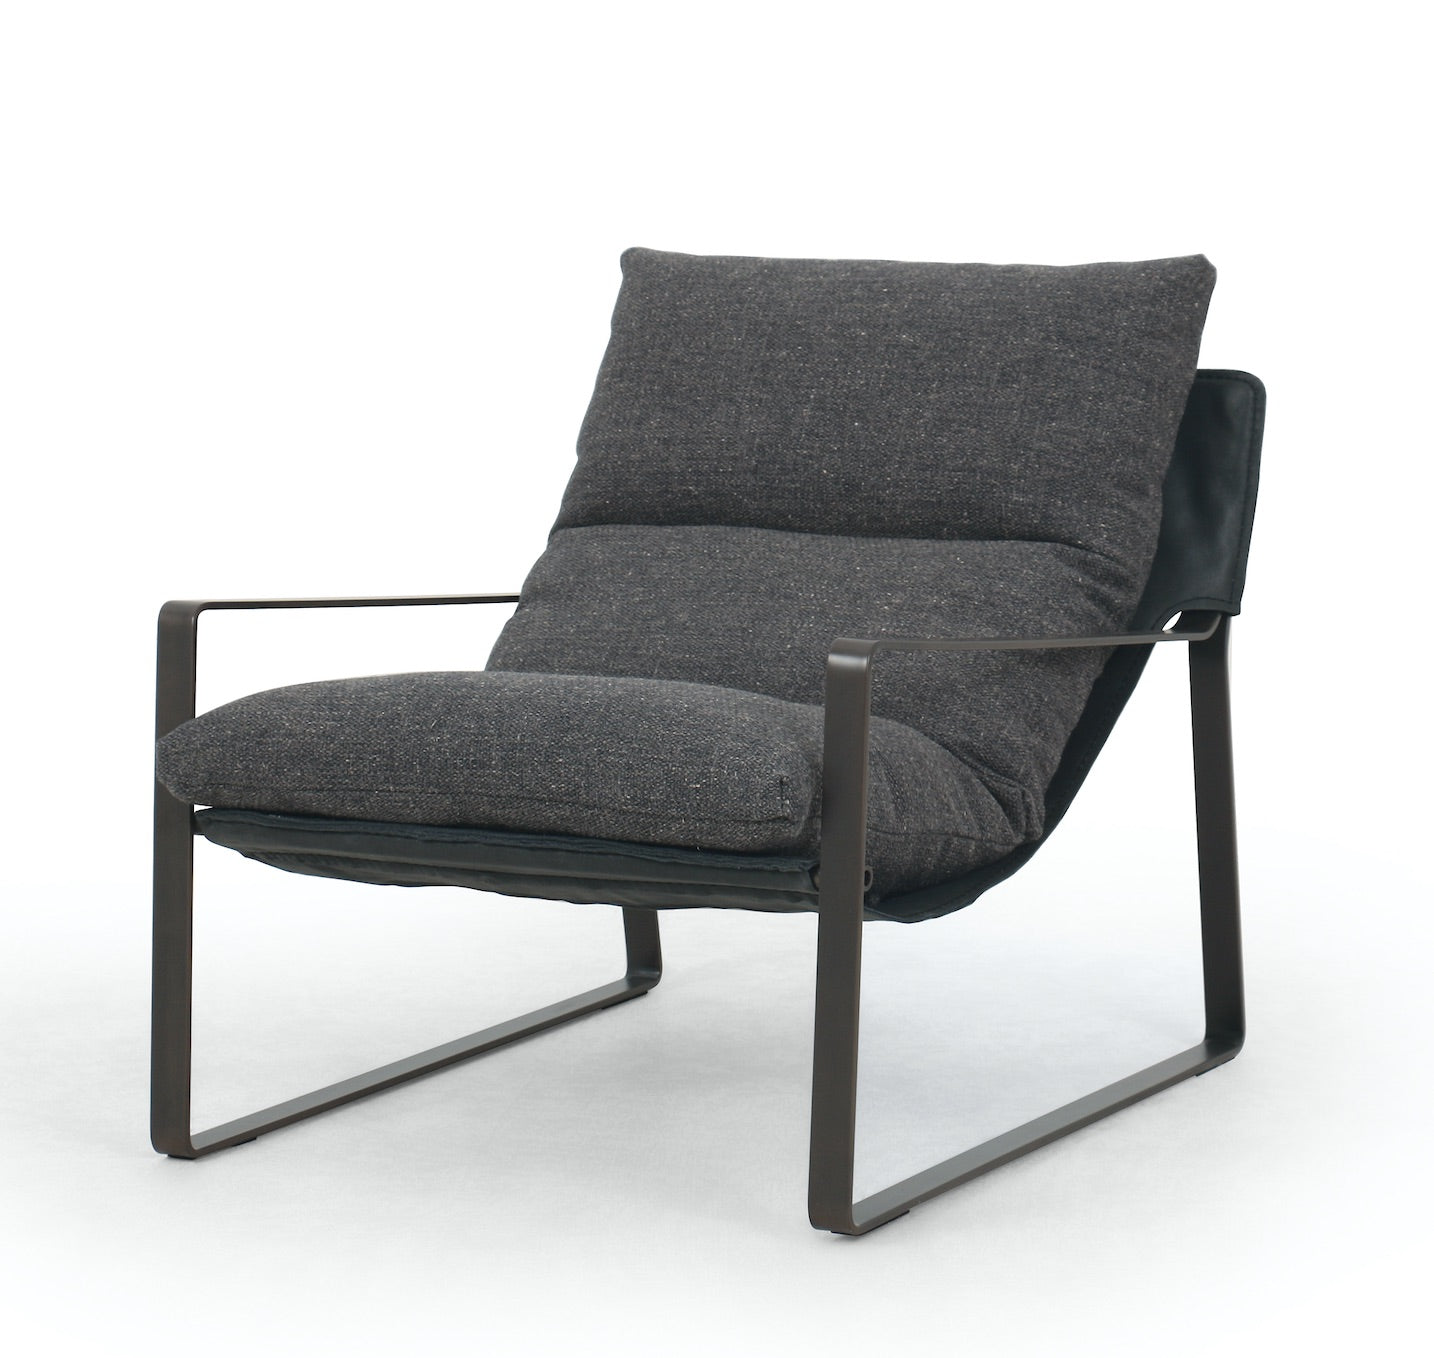 Emmet Industrial Metal Frame Sling Chair